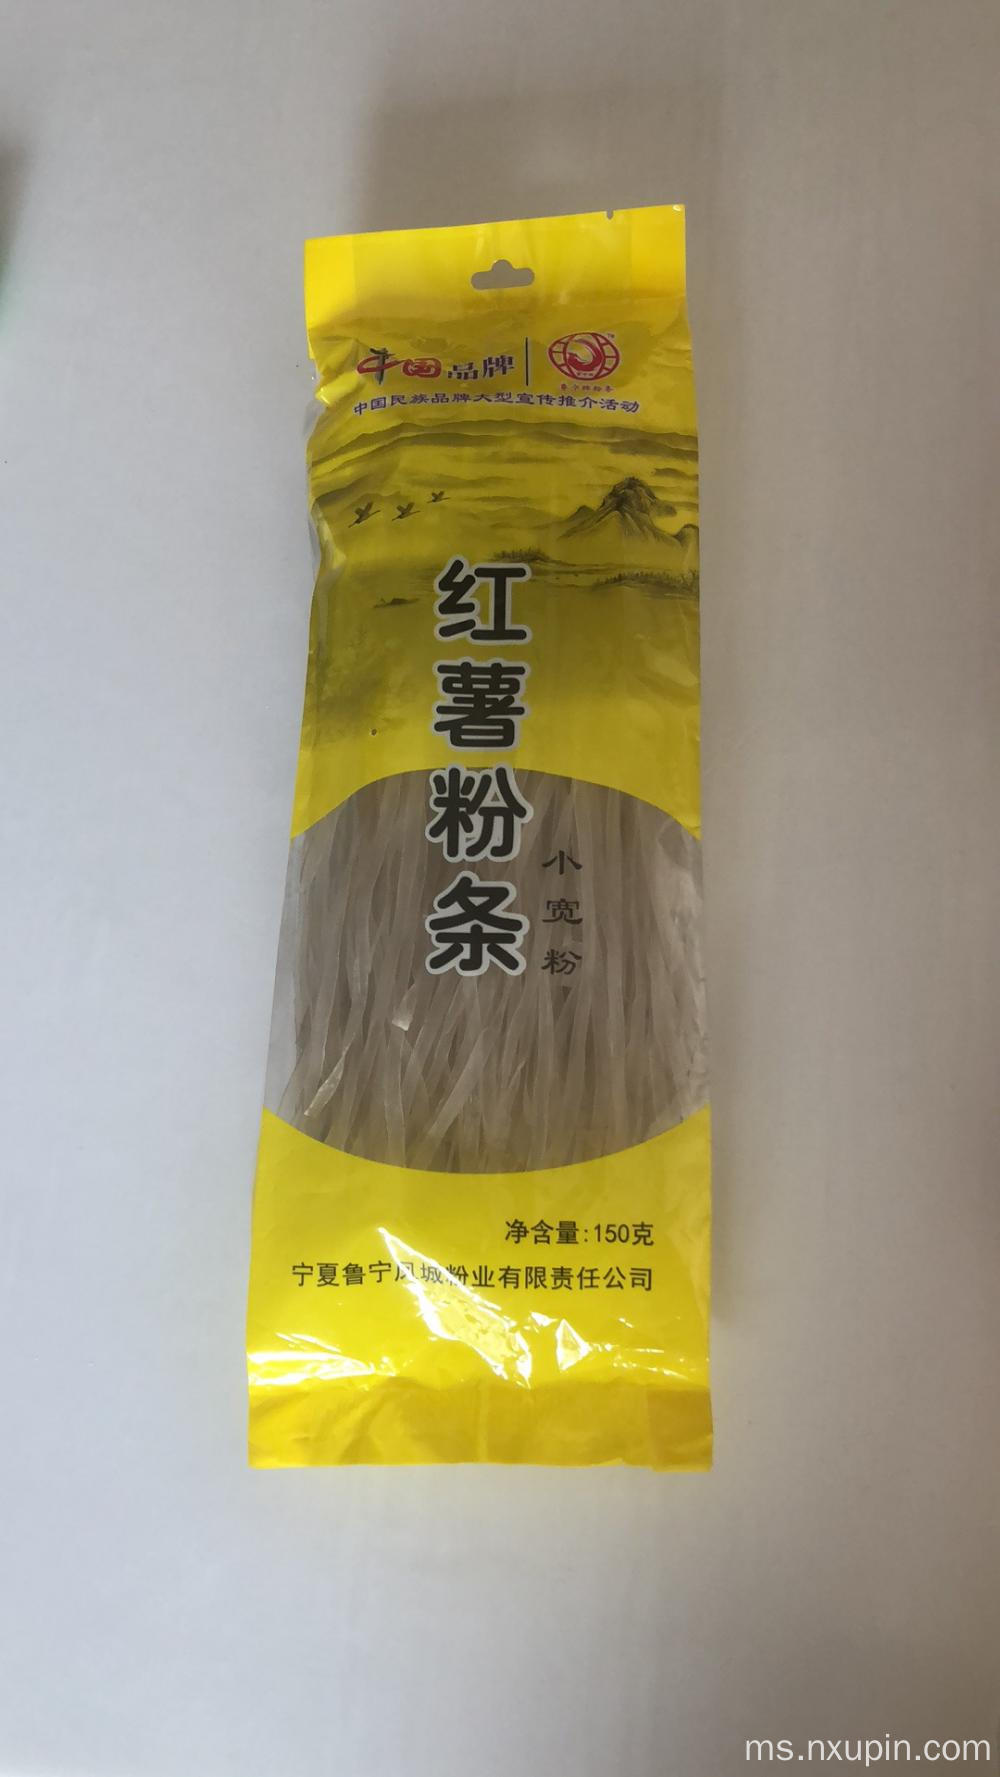 Lu ning Wide vermicelli bag 150g